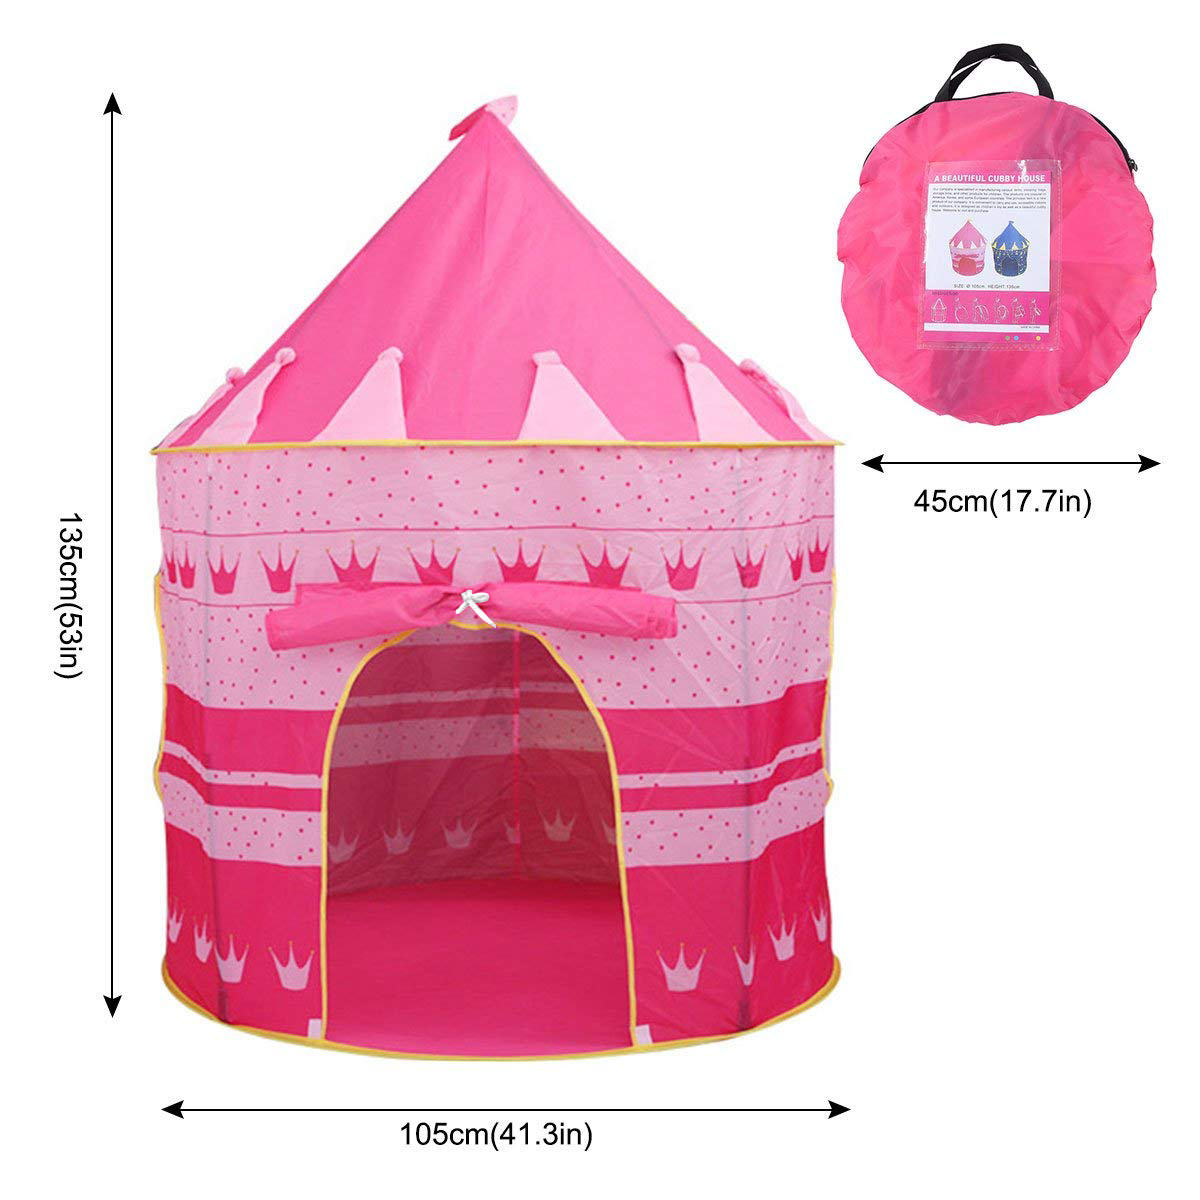 Magicfly Princess Castle Play Tent Children Playhouse Toy Tents For Kids S Indoor Outdoor Garden Portable Foldable Pink